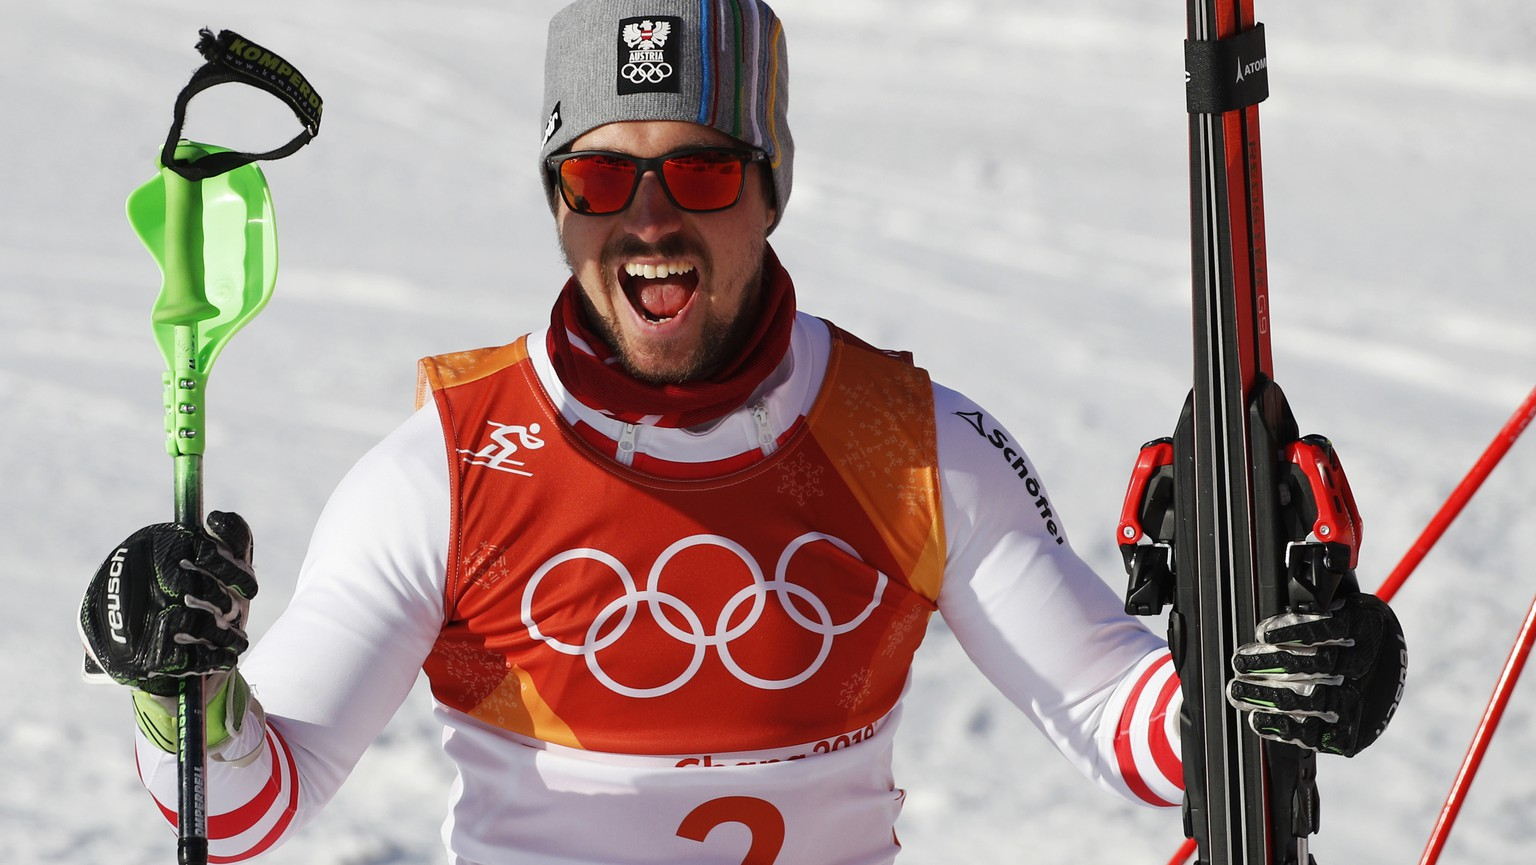 Austria's Marcel Hirscher celebrates after winning the gold medal in the men's combined at the 2018 Winter Olympics in Jeongseon, South Korea, Tuesday, Feb. 13, 2018. (AP Photo/Christophe Ena)